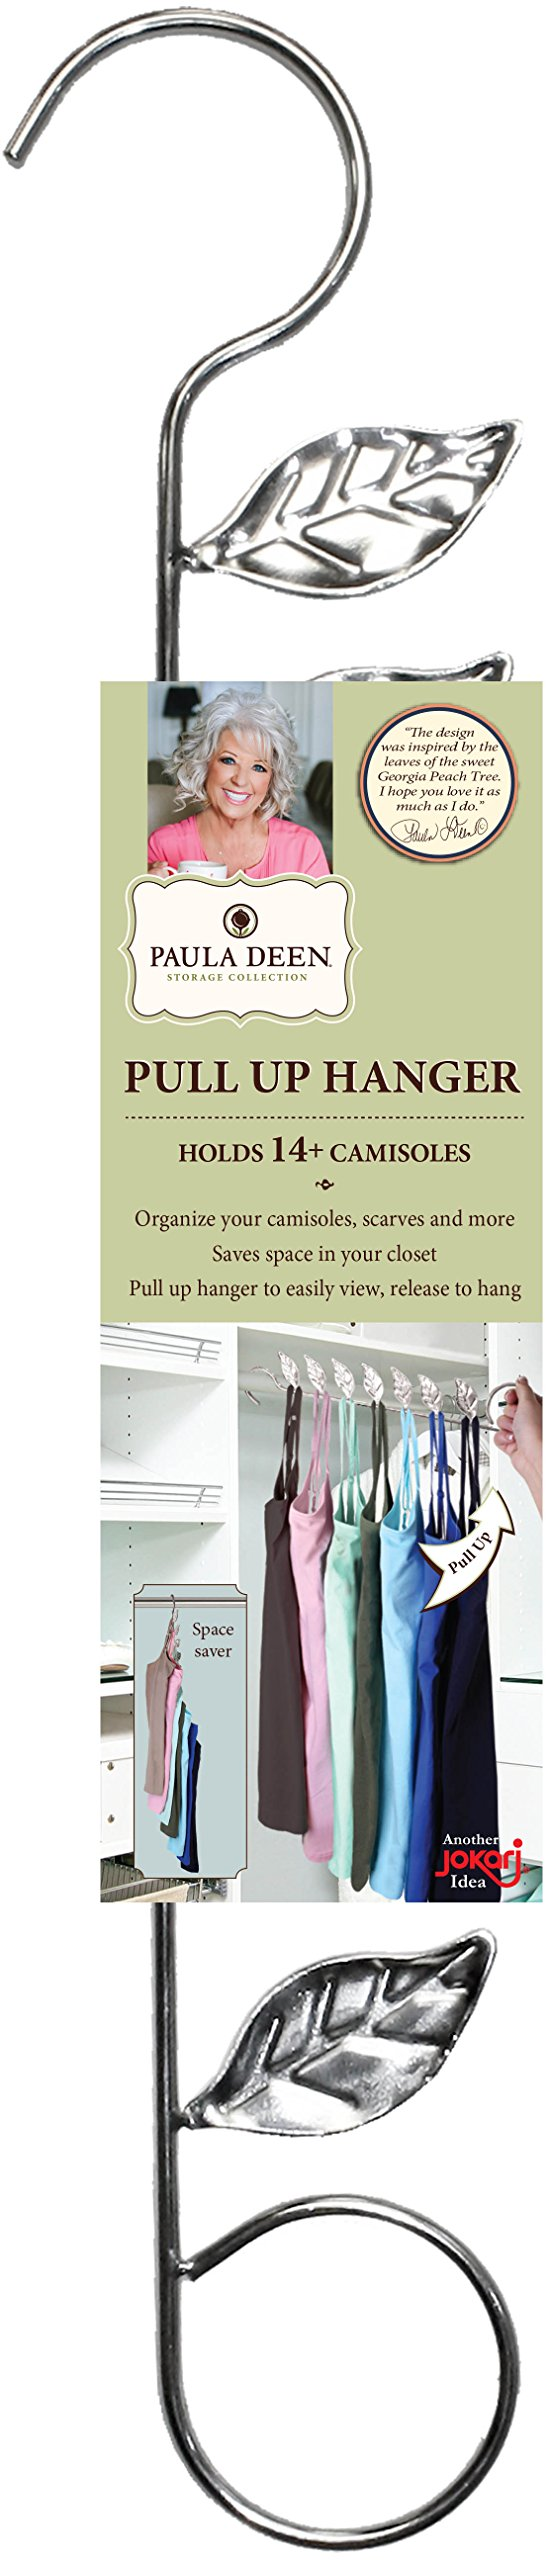 Paula Deen Multi Hook Hanger, Best For Space Saving Multi Use Clothes Organizer, See Clothing at a Glance With Pull Up Design, Save Room in Your Closet by Jokari